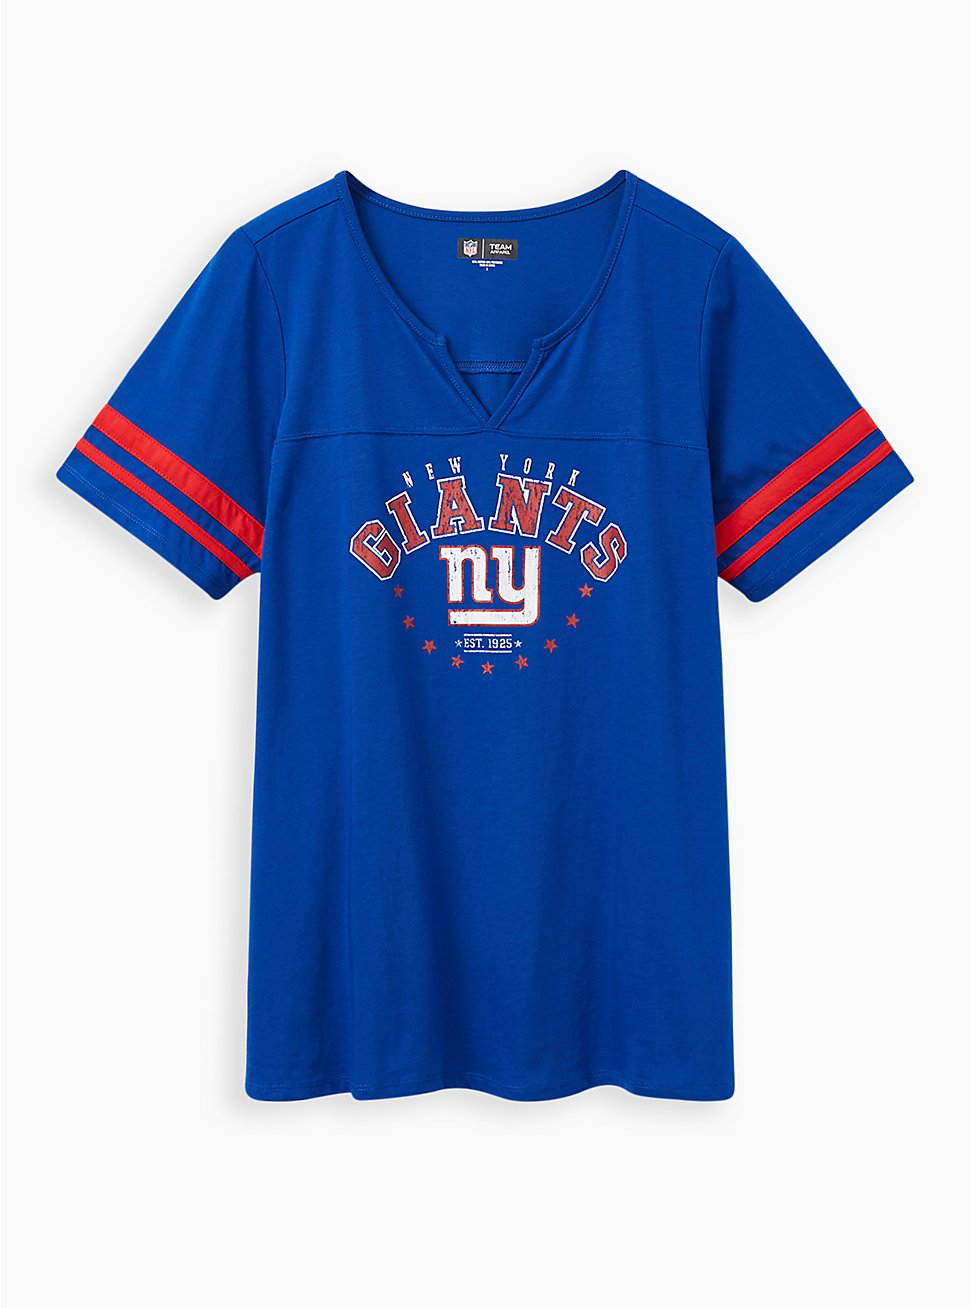 Plus Size Classic Fit Football Tee - NFL New York Giants Blue, PEACOAT, hi-res